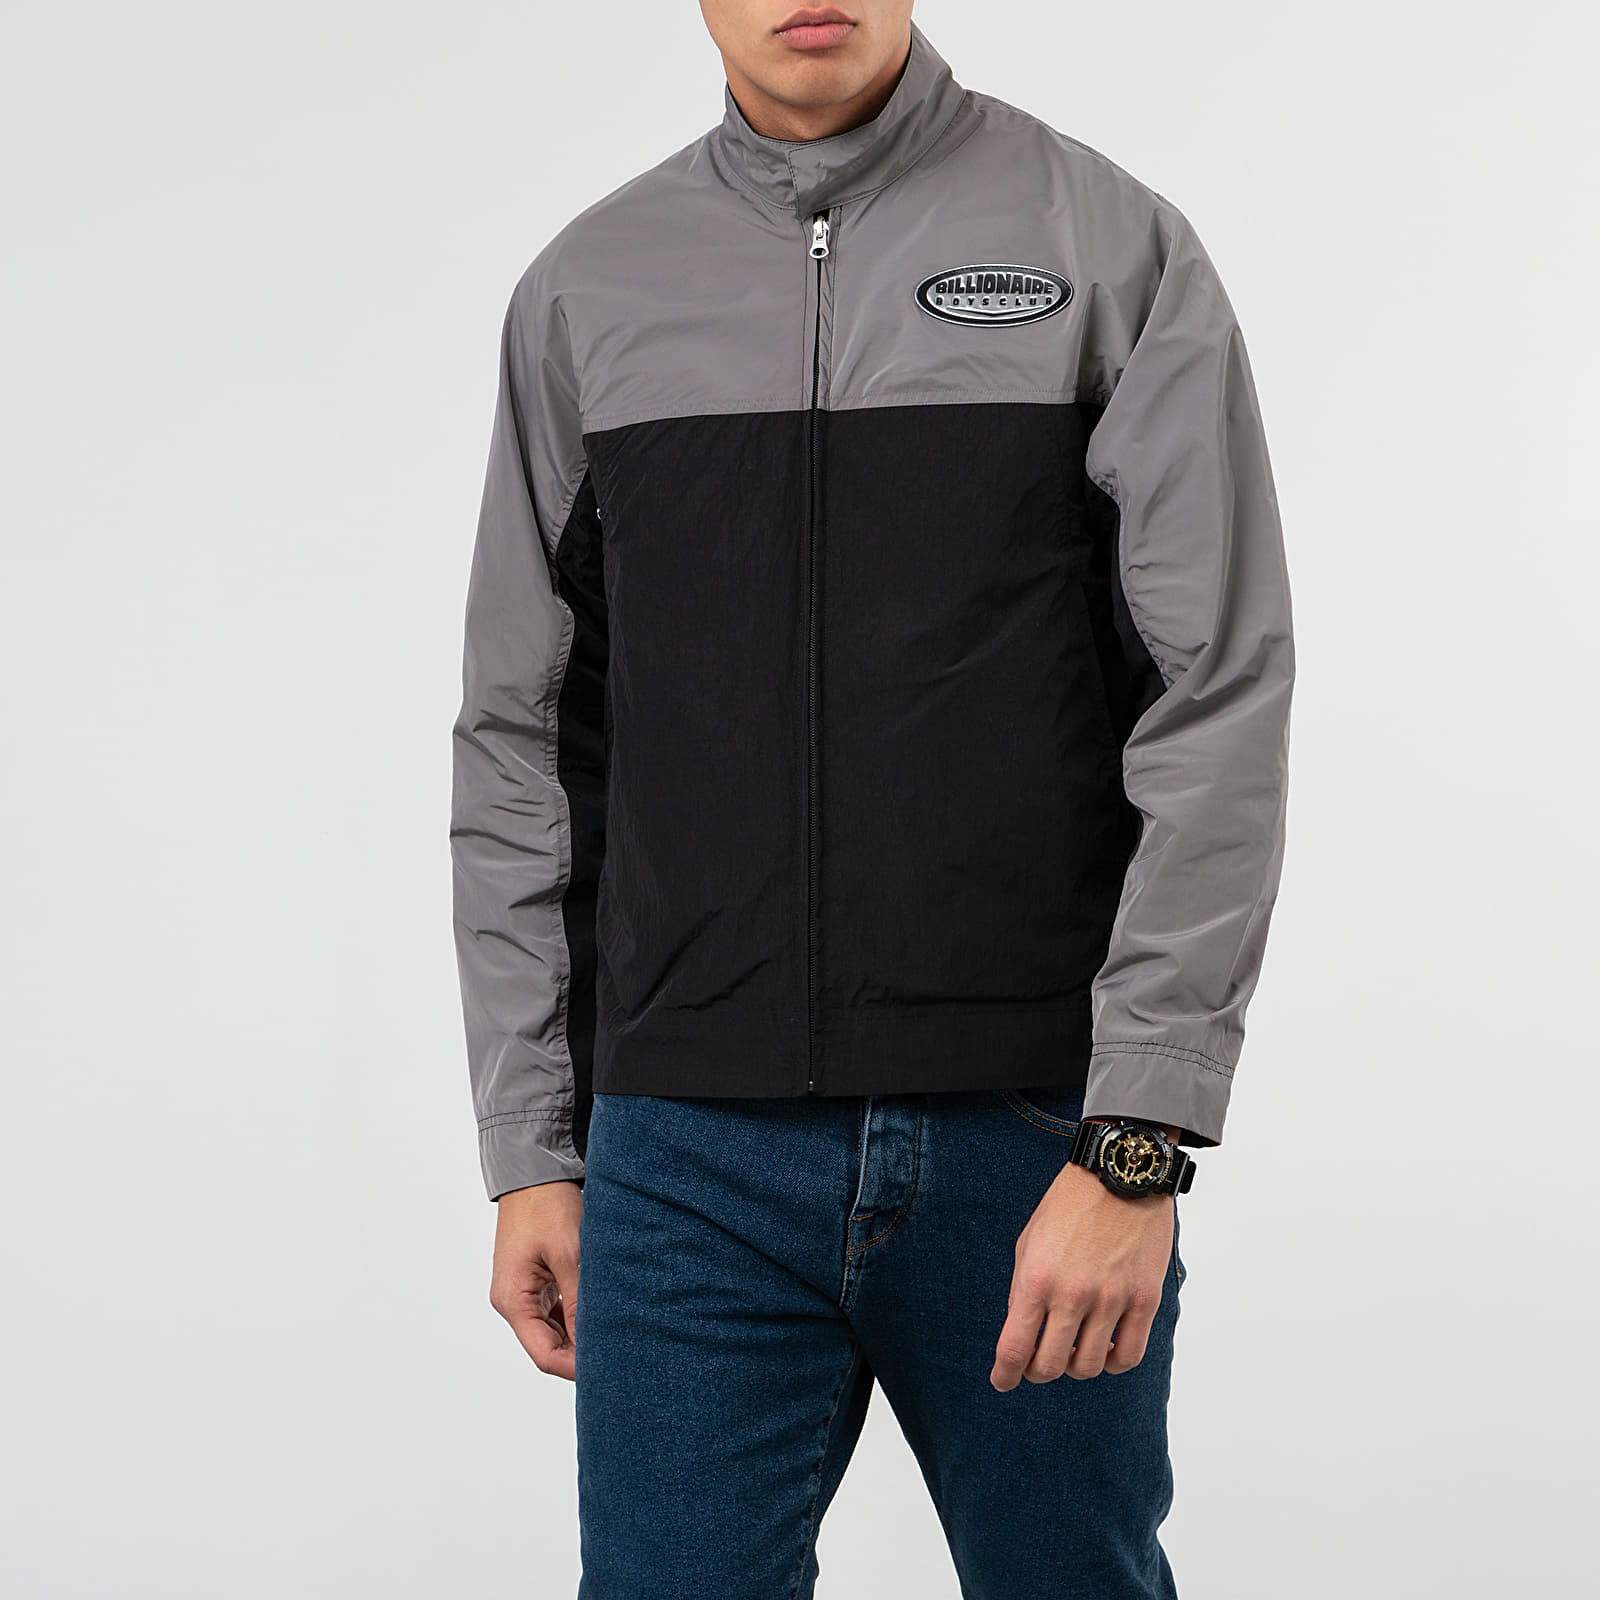 Billionaire Boys Club Reversible Zip Jacket